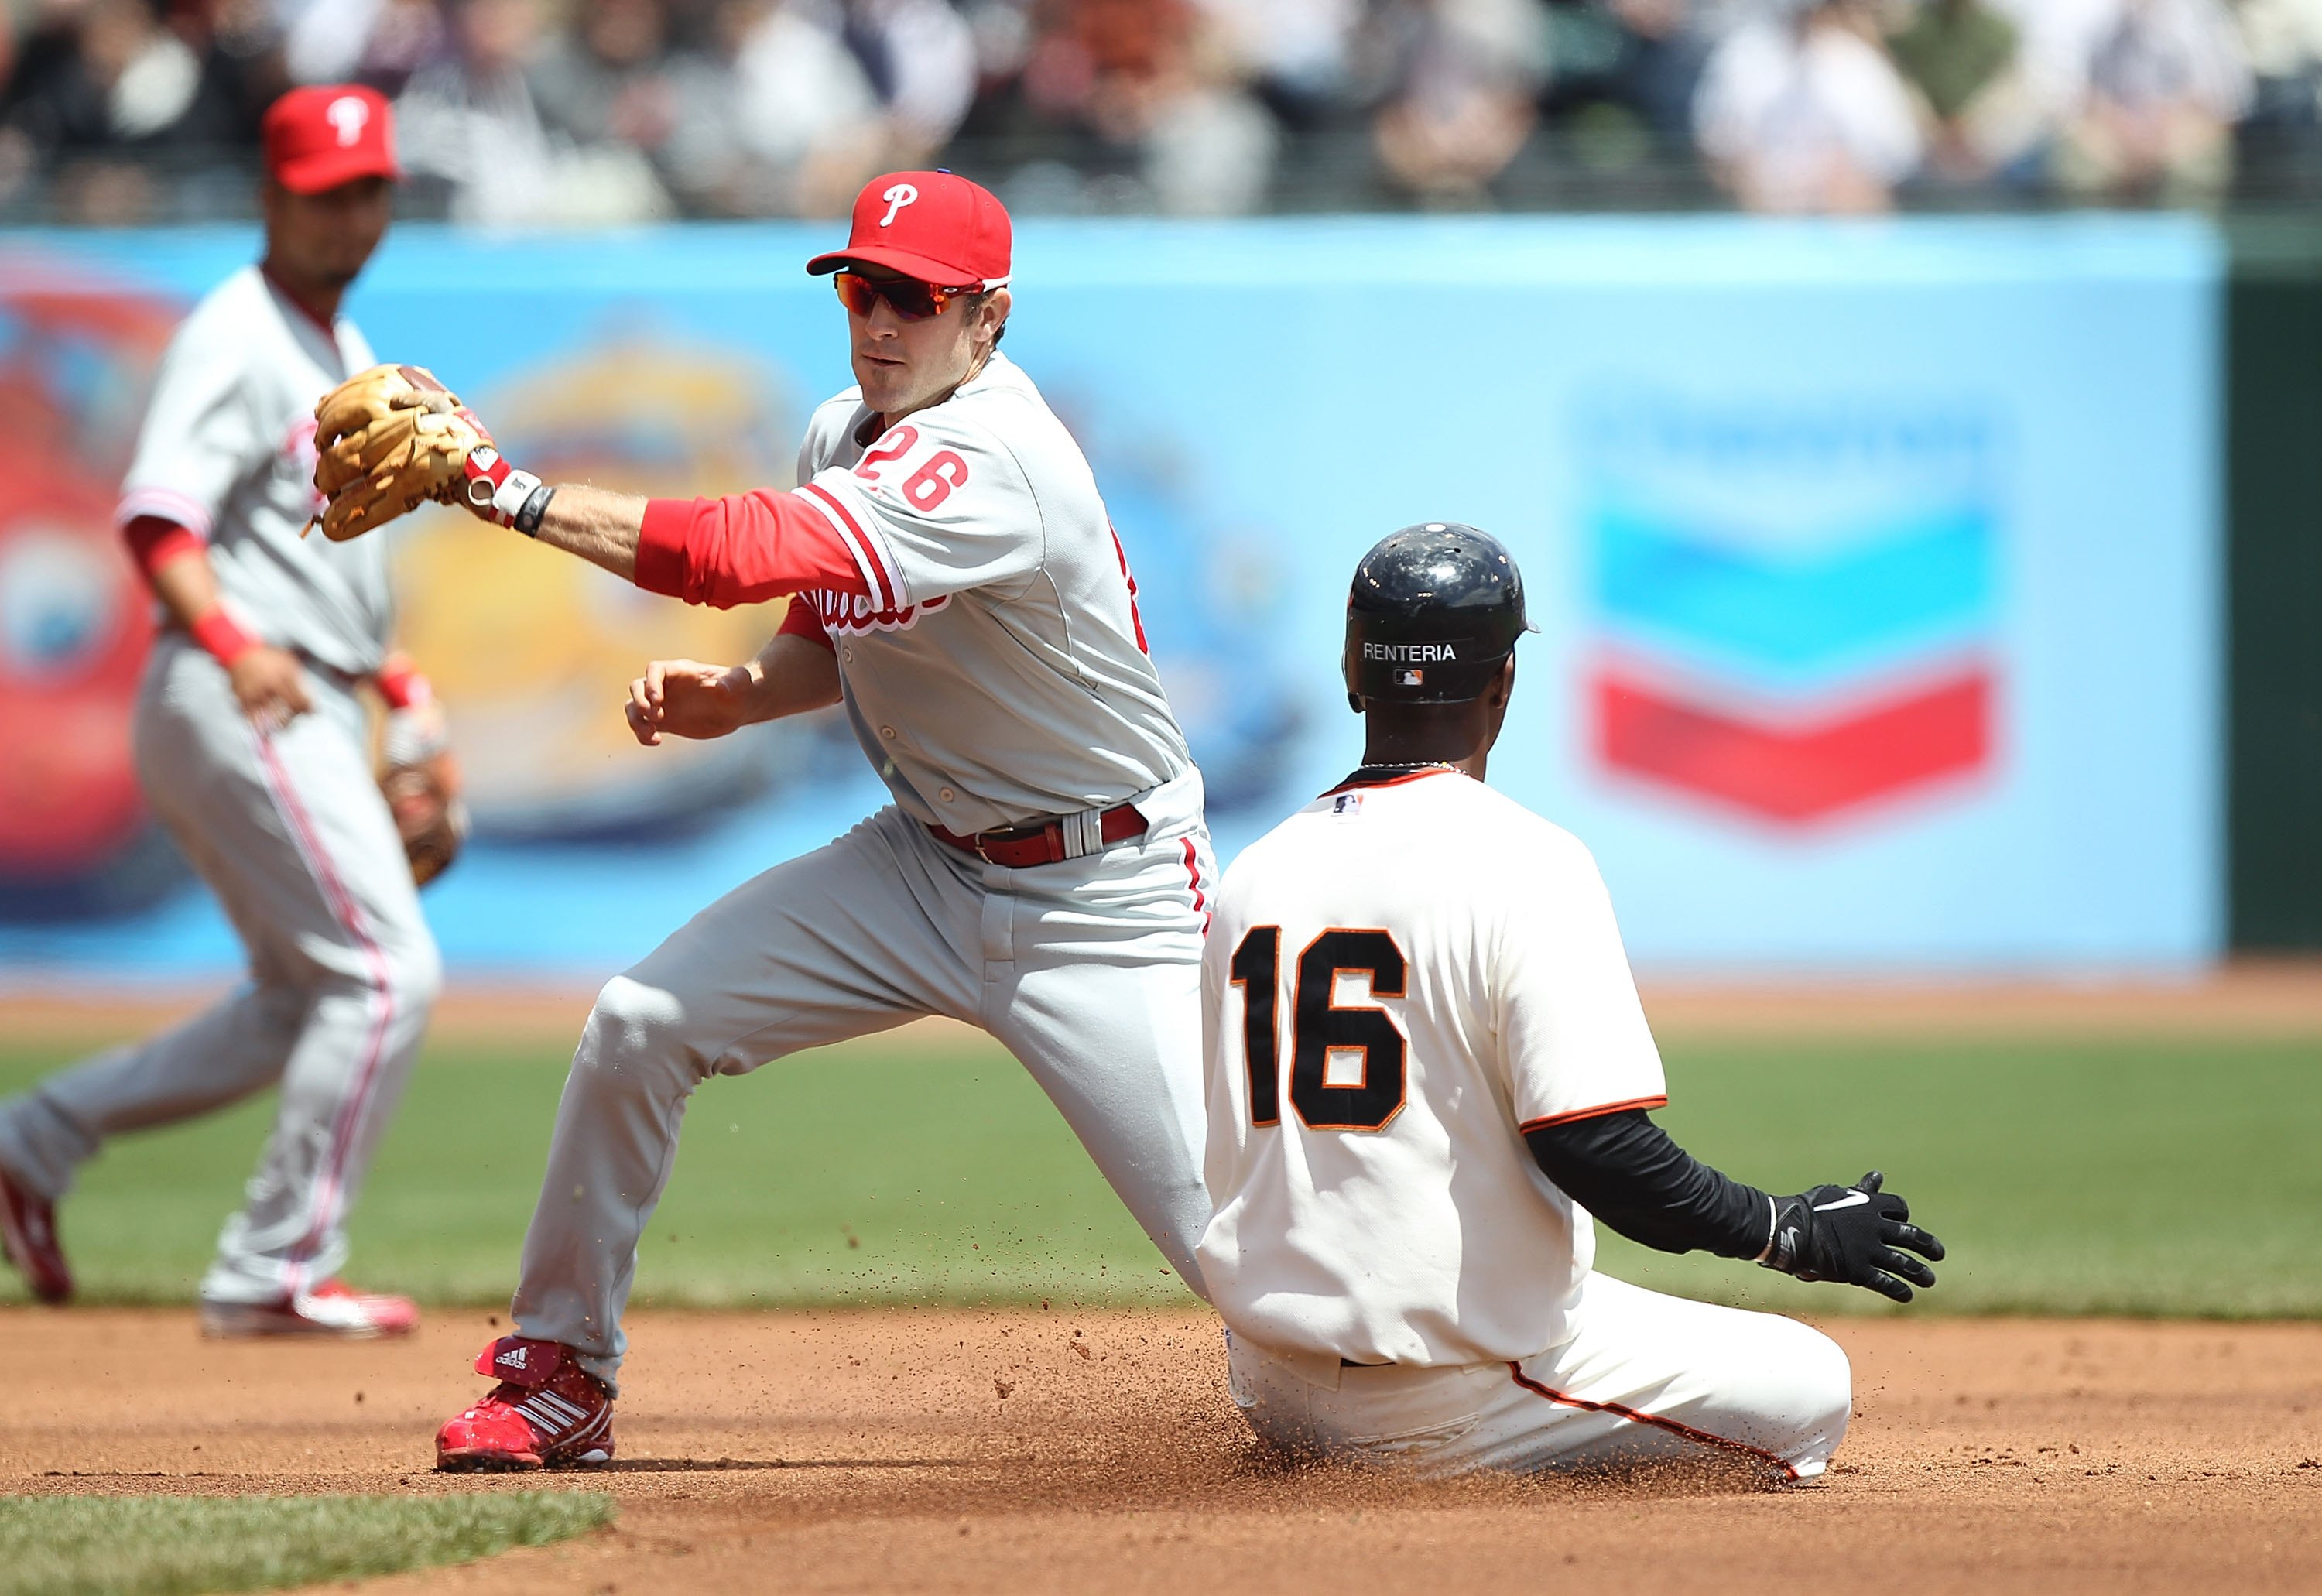 SAN FRANCISCO - APRIL 28:  Chase Utley #26 of the Philadelphia Phillies in action against the San Francisco Giants during an MLB game at AT&T Park on April 28, 2010 in San Francisco, California.  (Photo by Jed Jacobsohn/Getty Images)